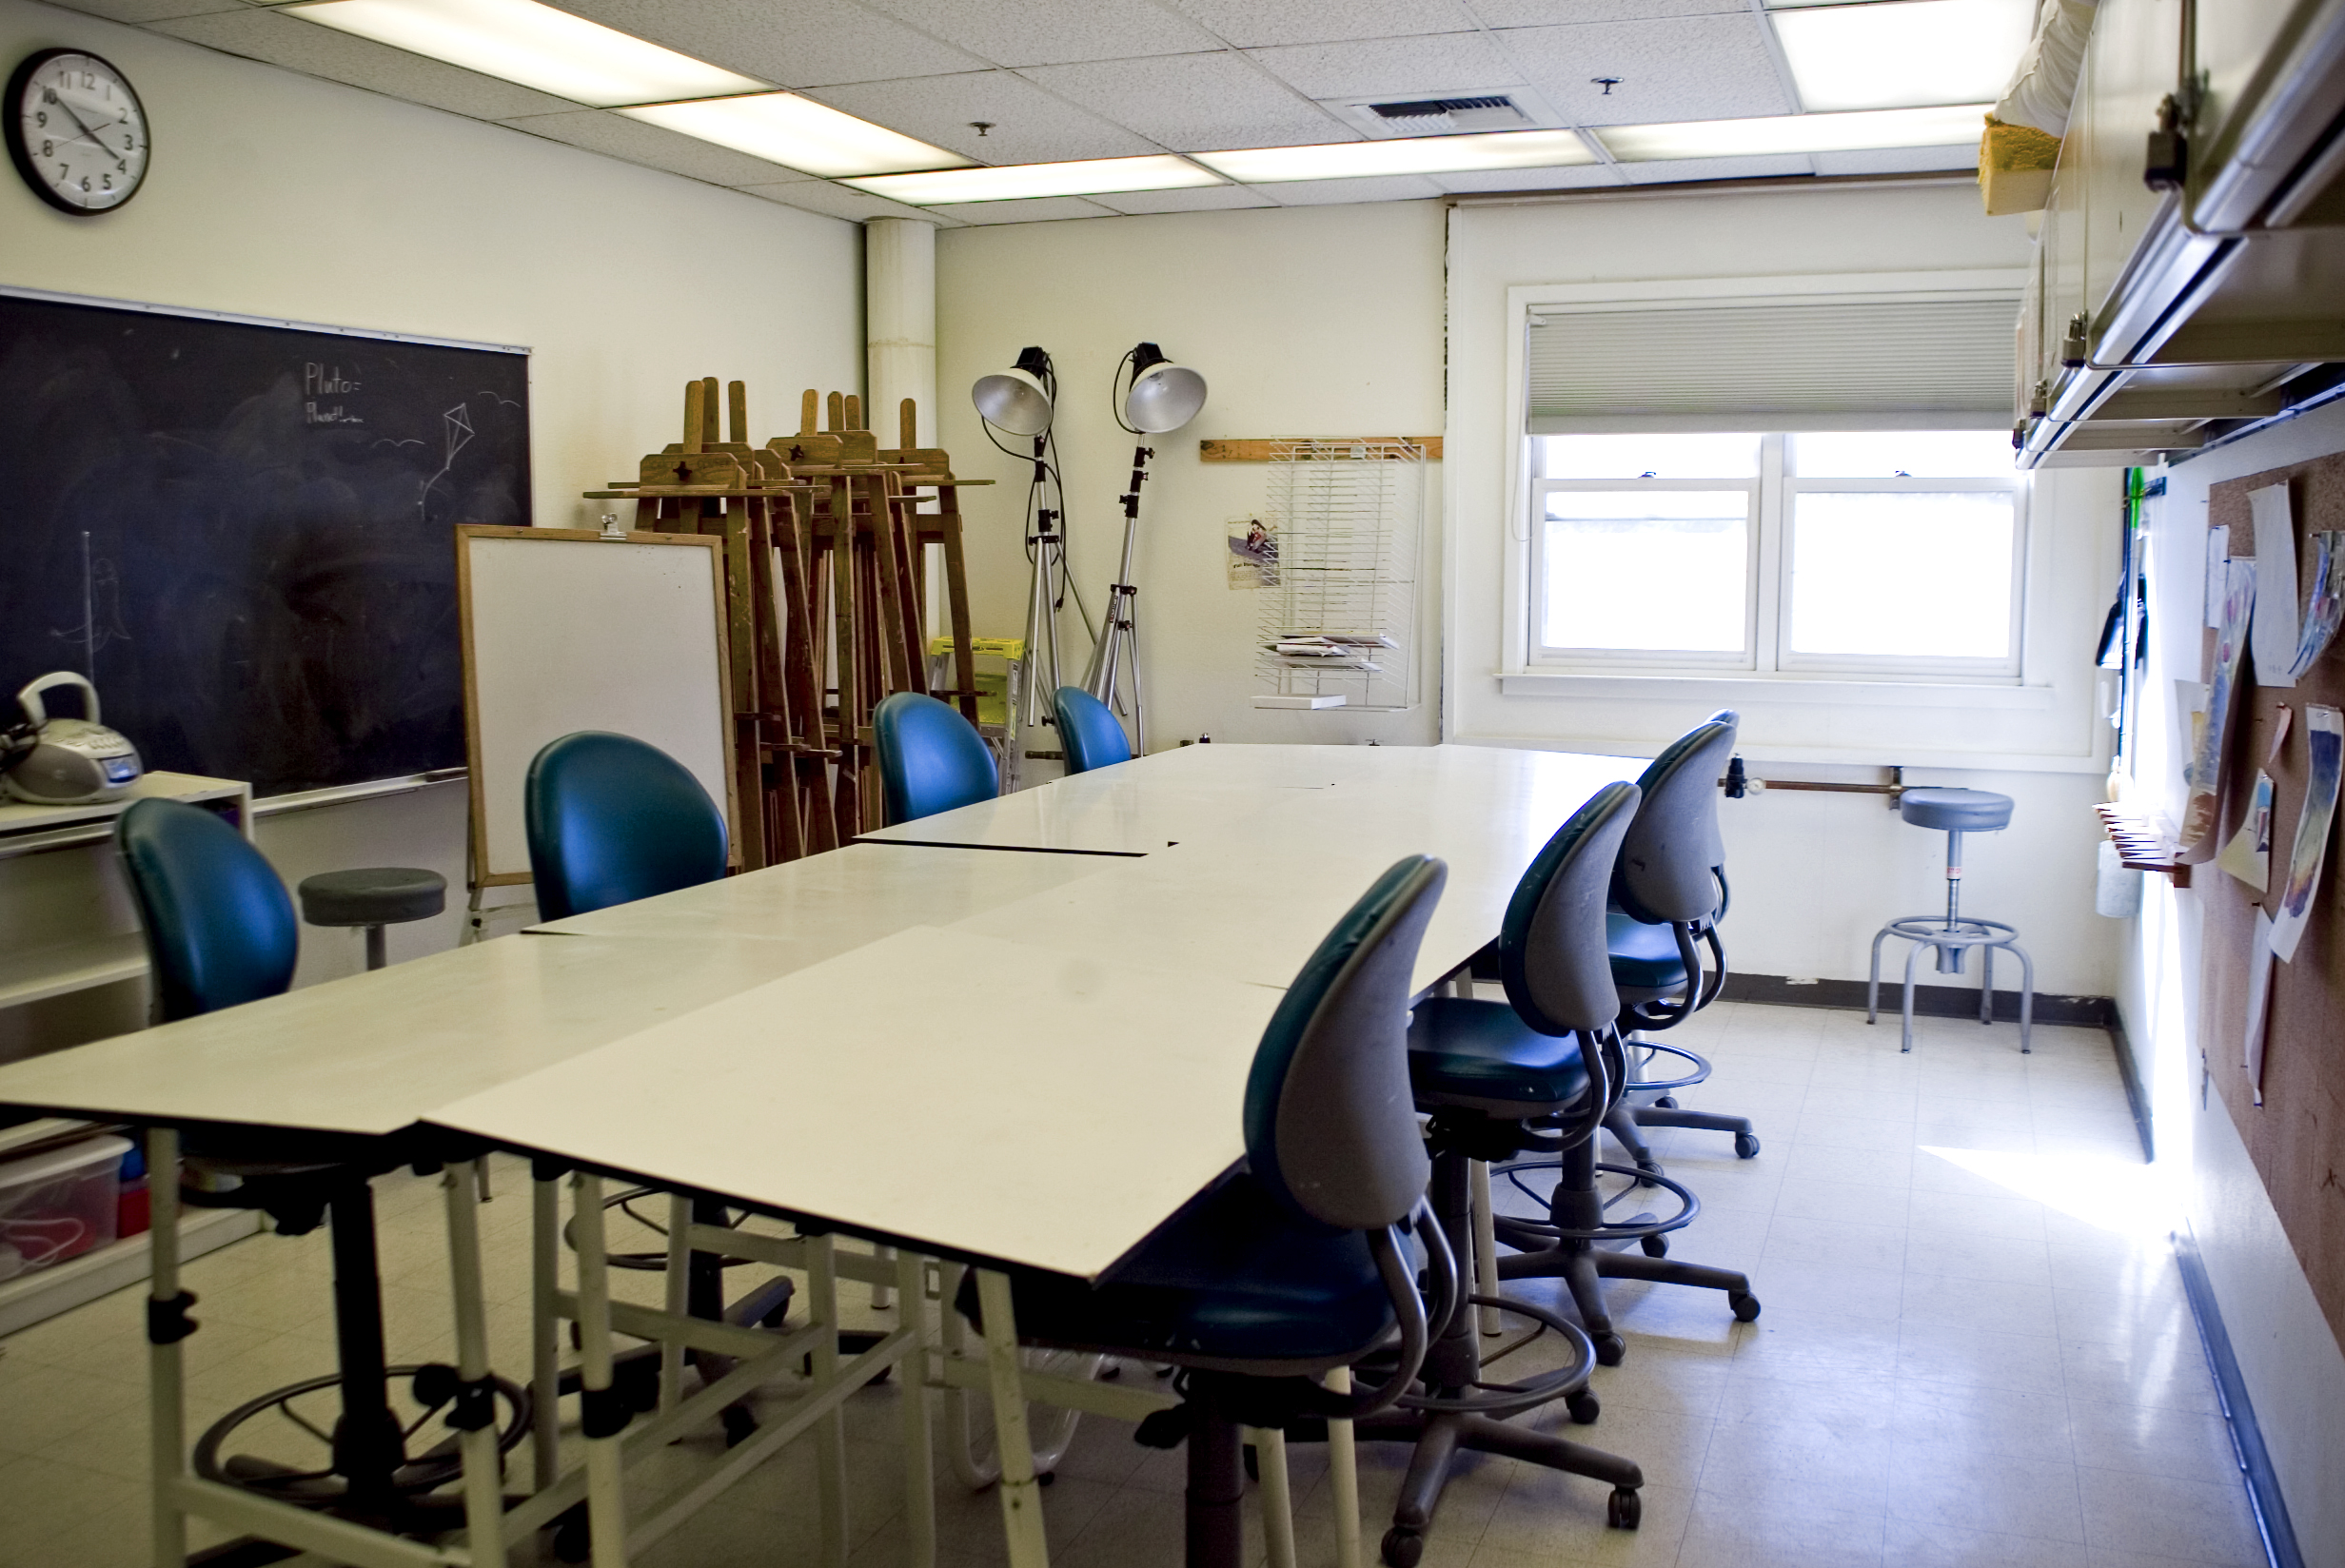 arts and crafts studio at craft center at uc davis